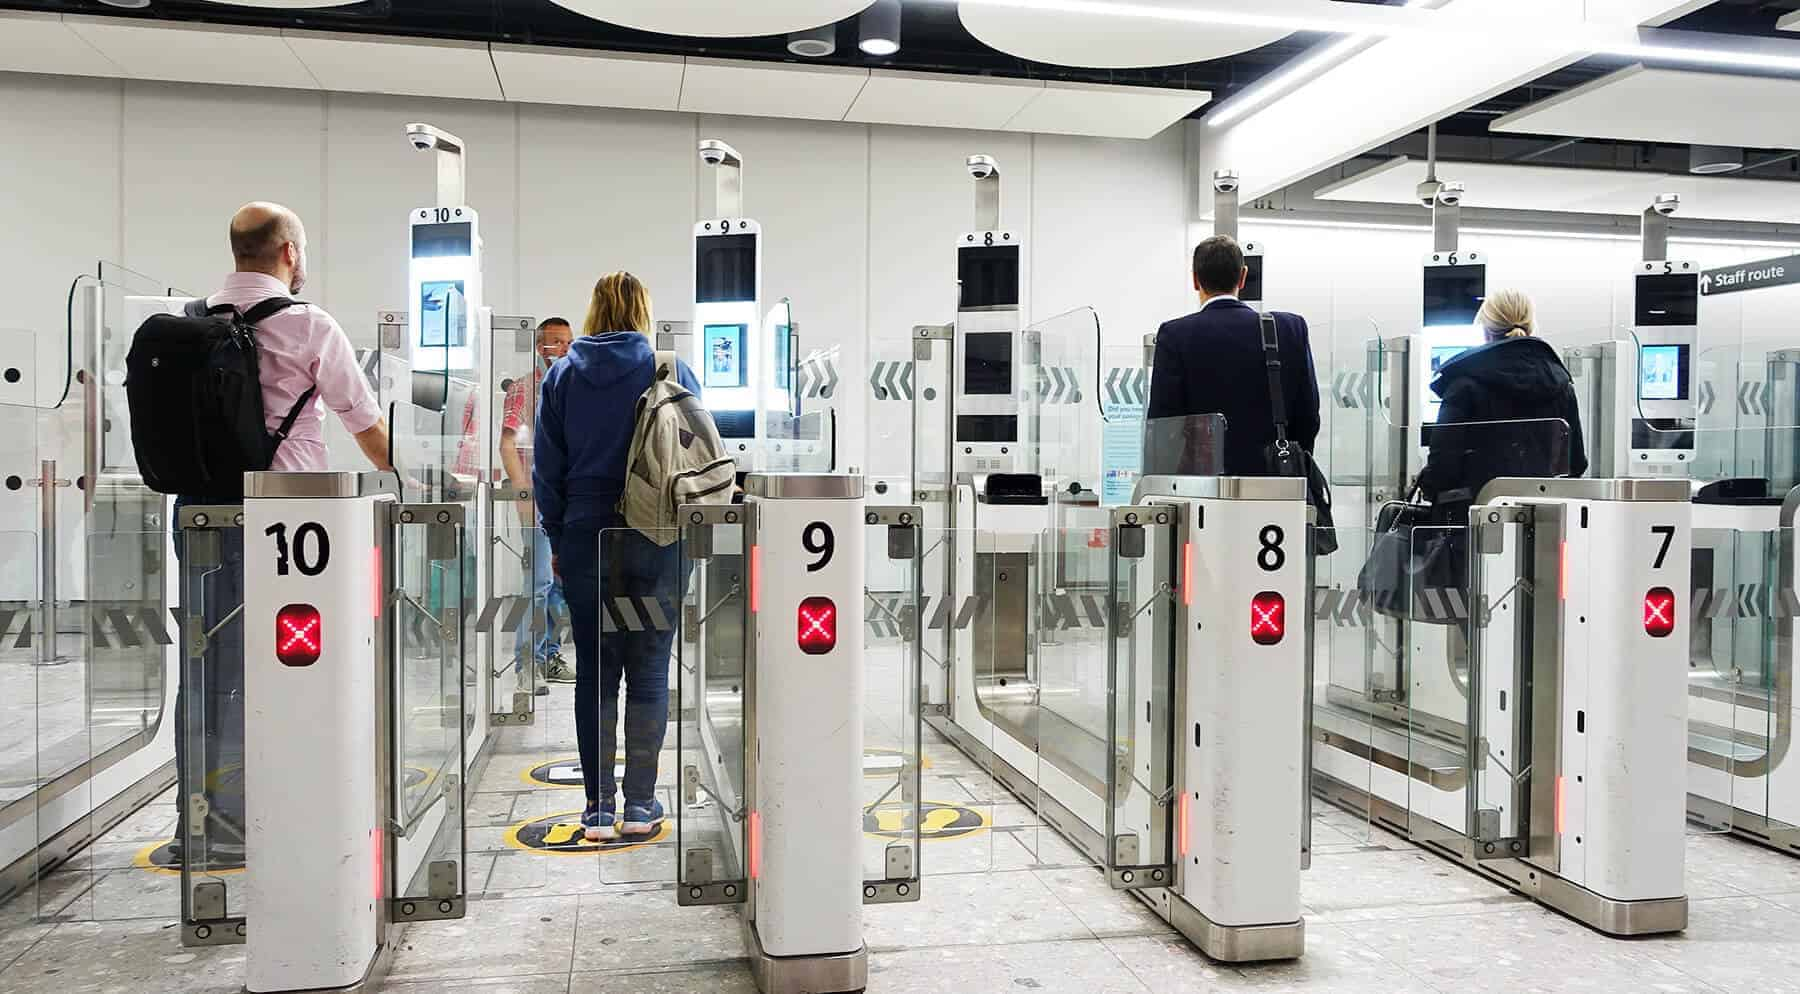 Facial recognition for airport security